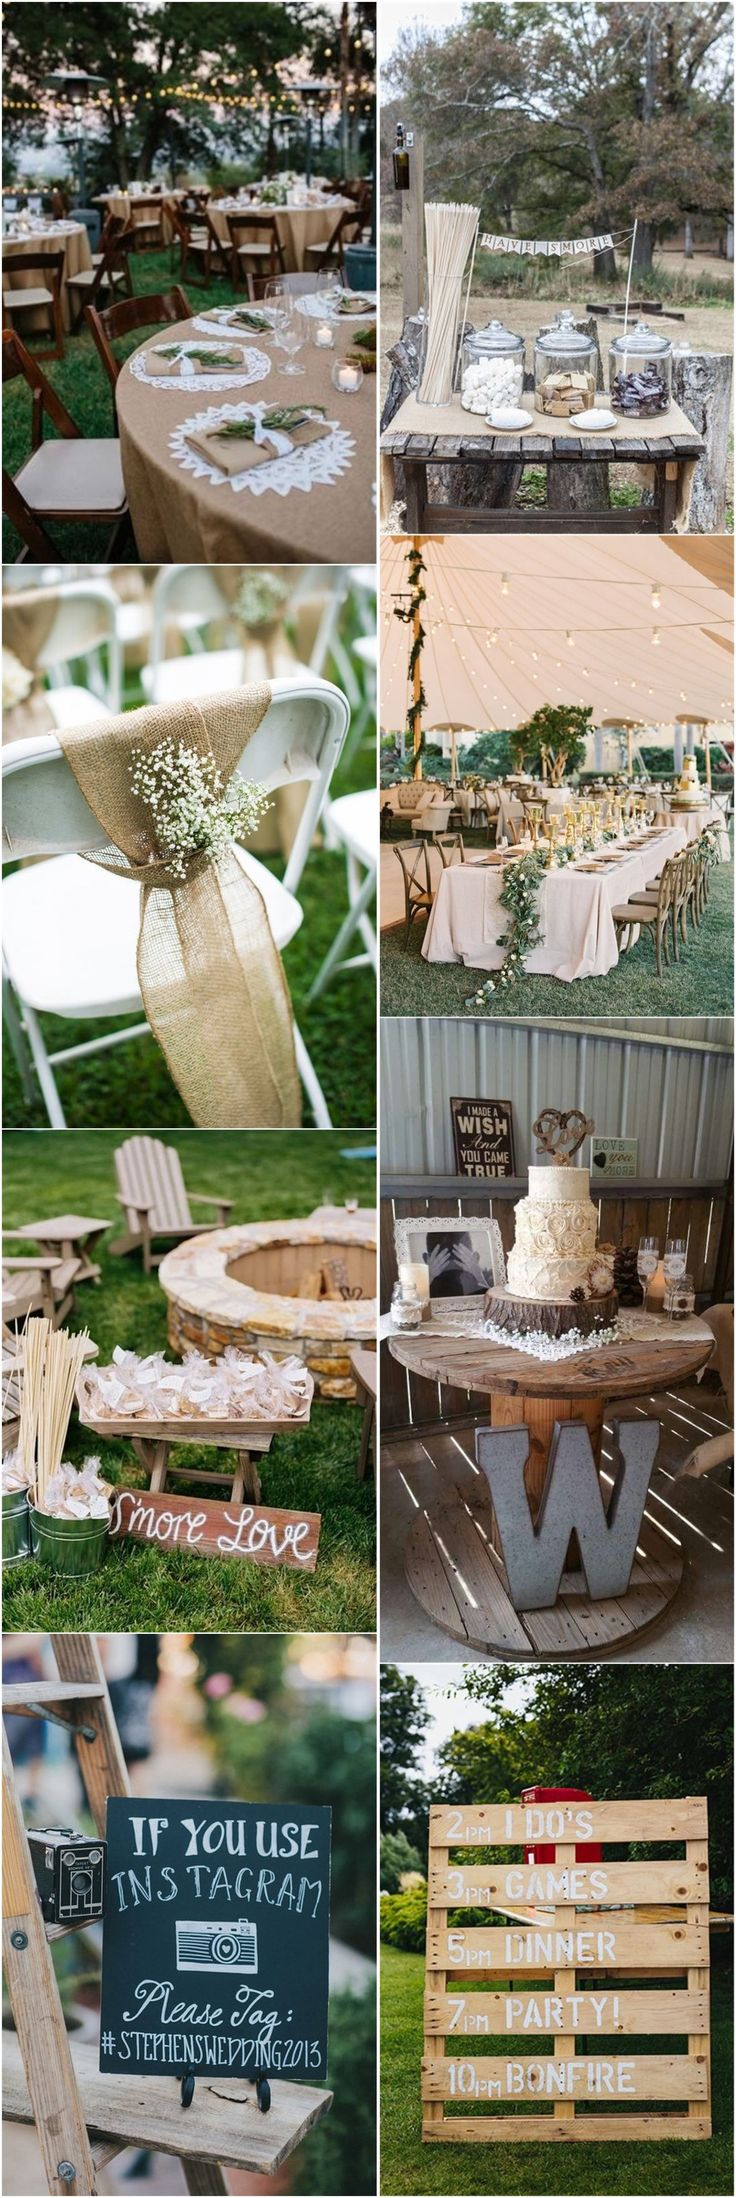 802 best rustic weddings images on pinterest outdoor for Outdoor wedding decorations on a budget